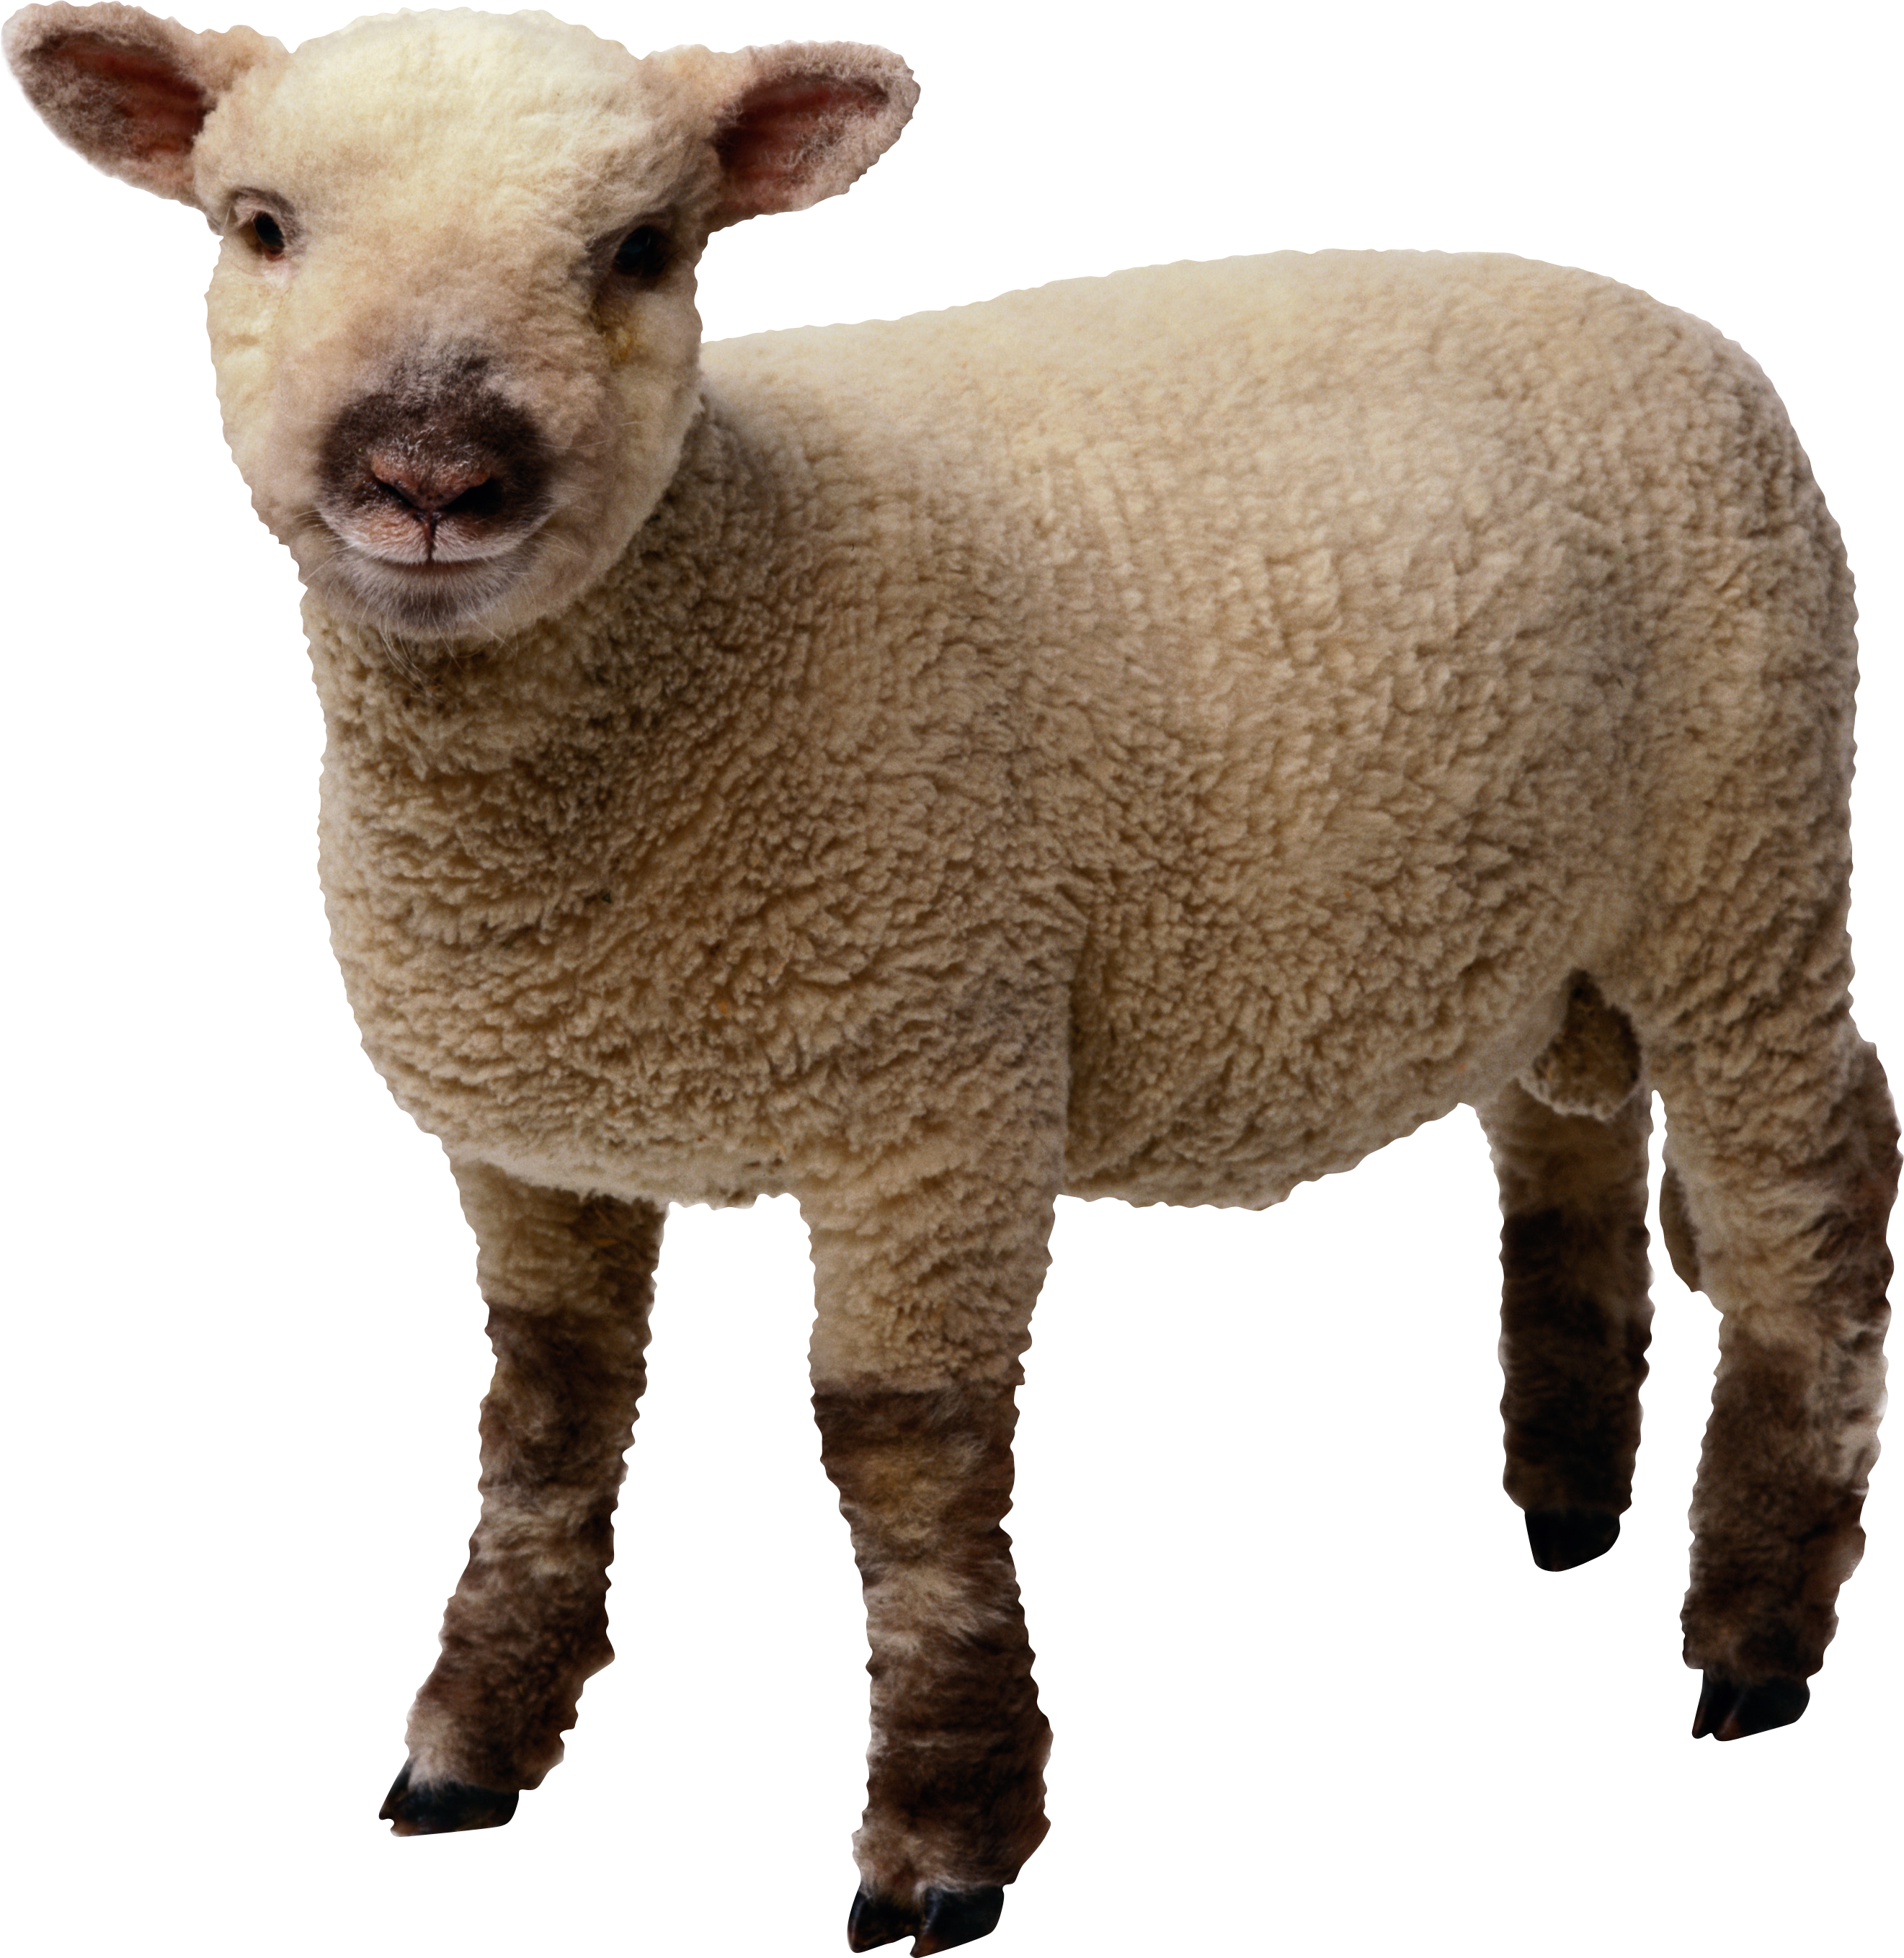 Sheep Png - little sheep PNG image